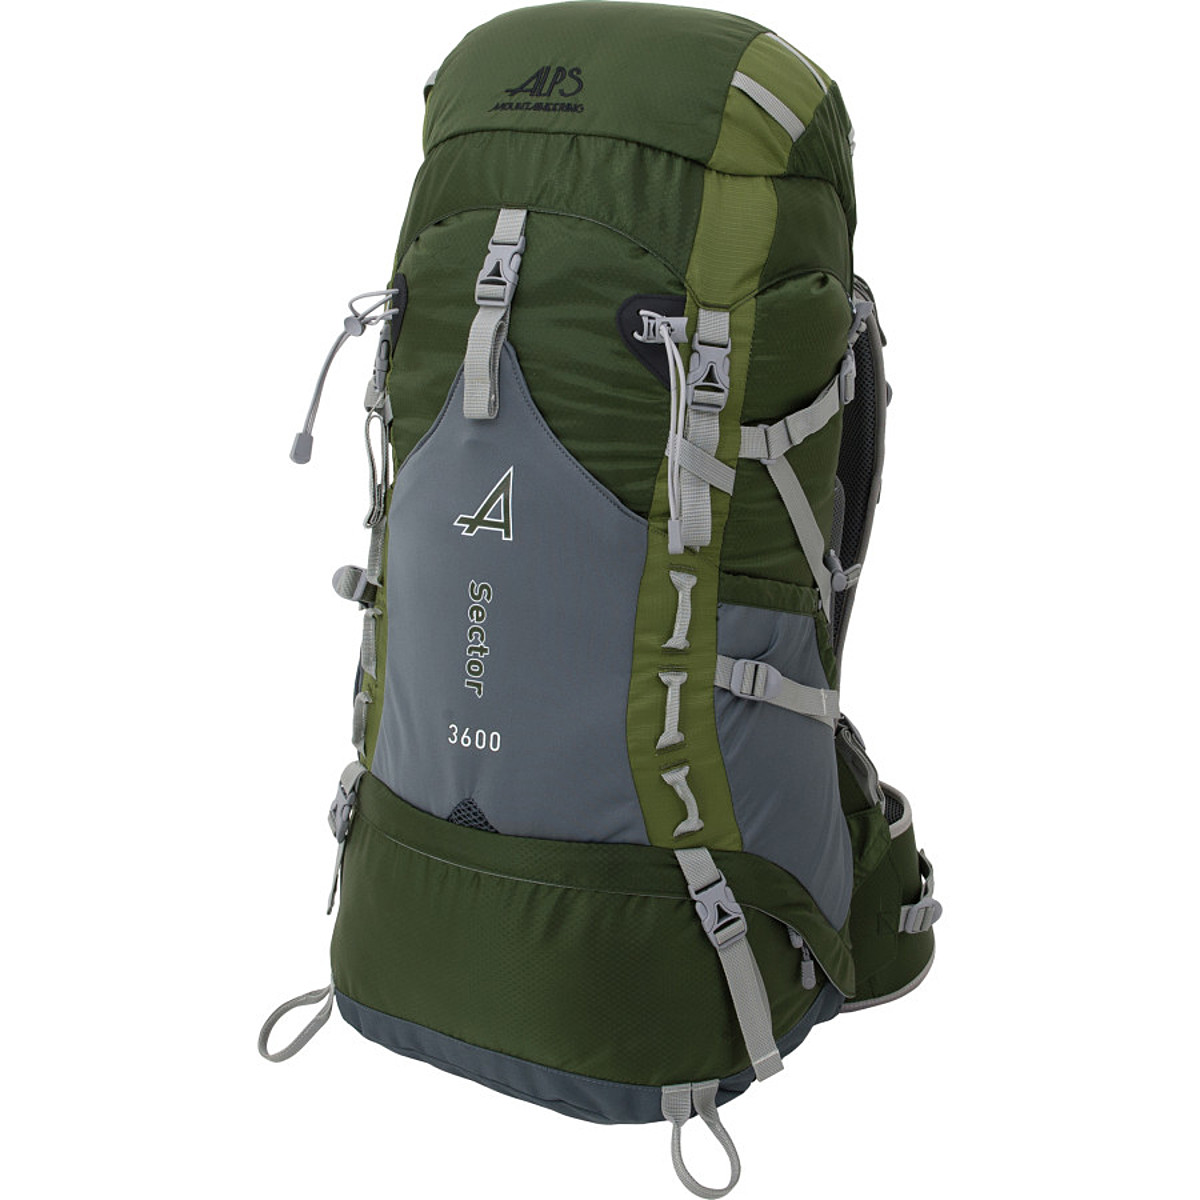 ALPS Mountaineering Sector 3600